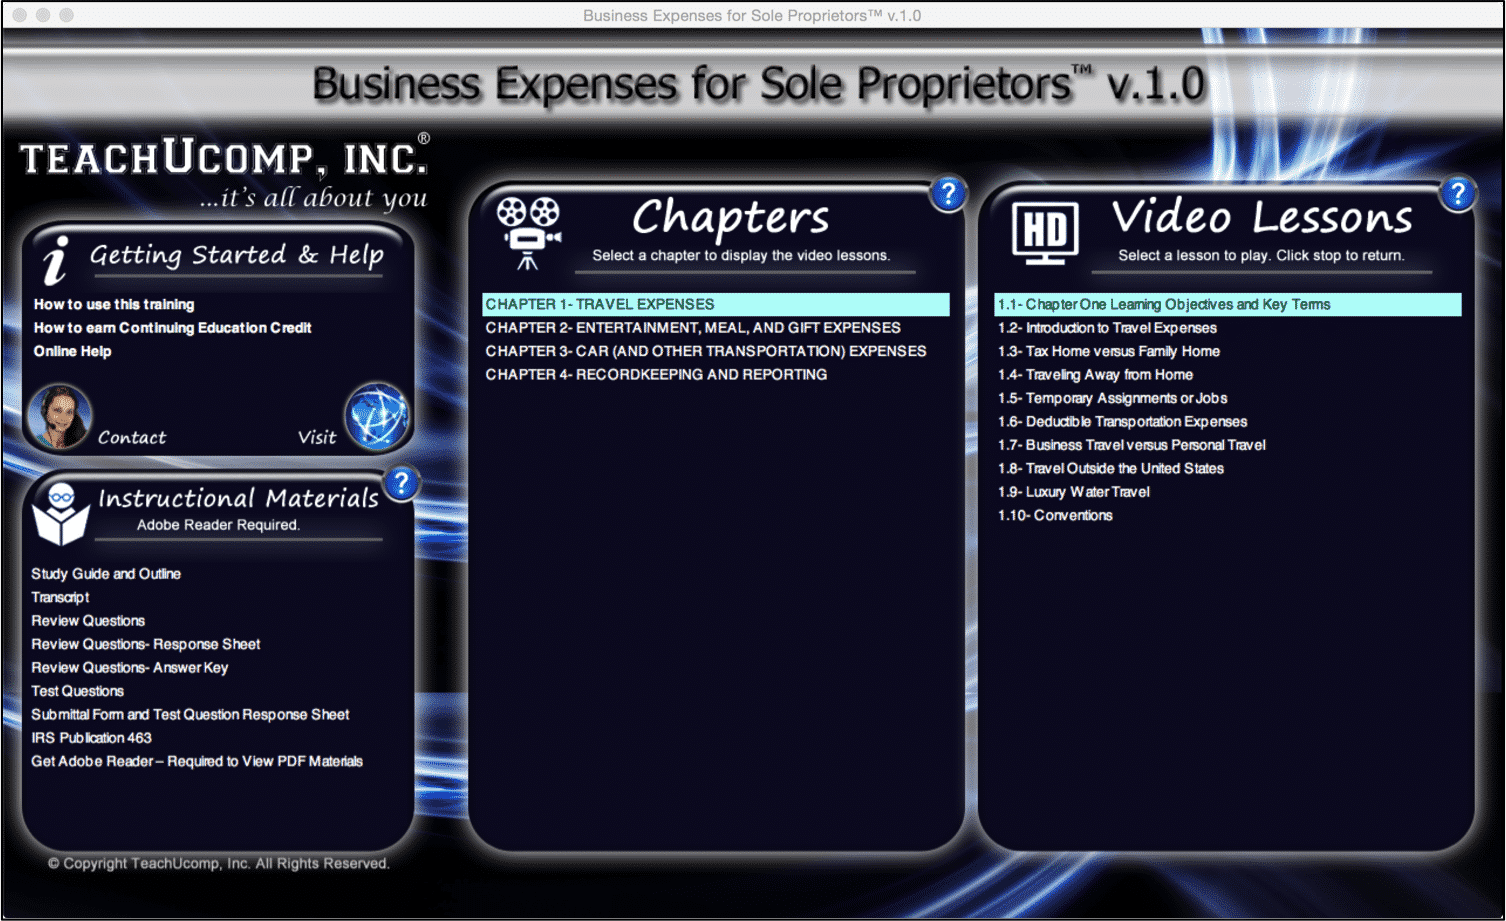 meal expenses business expenses for sole proprietors